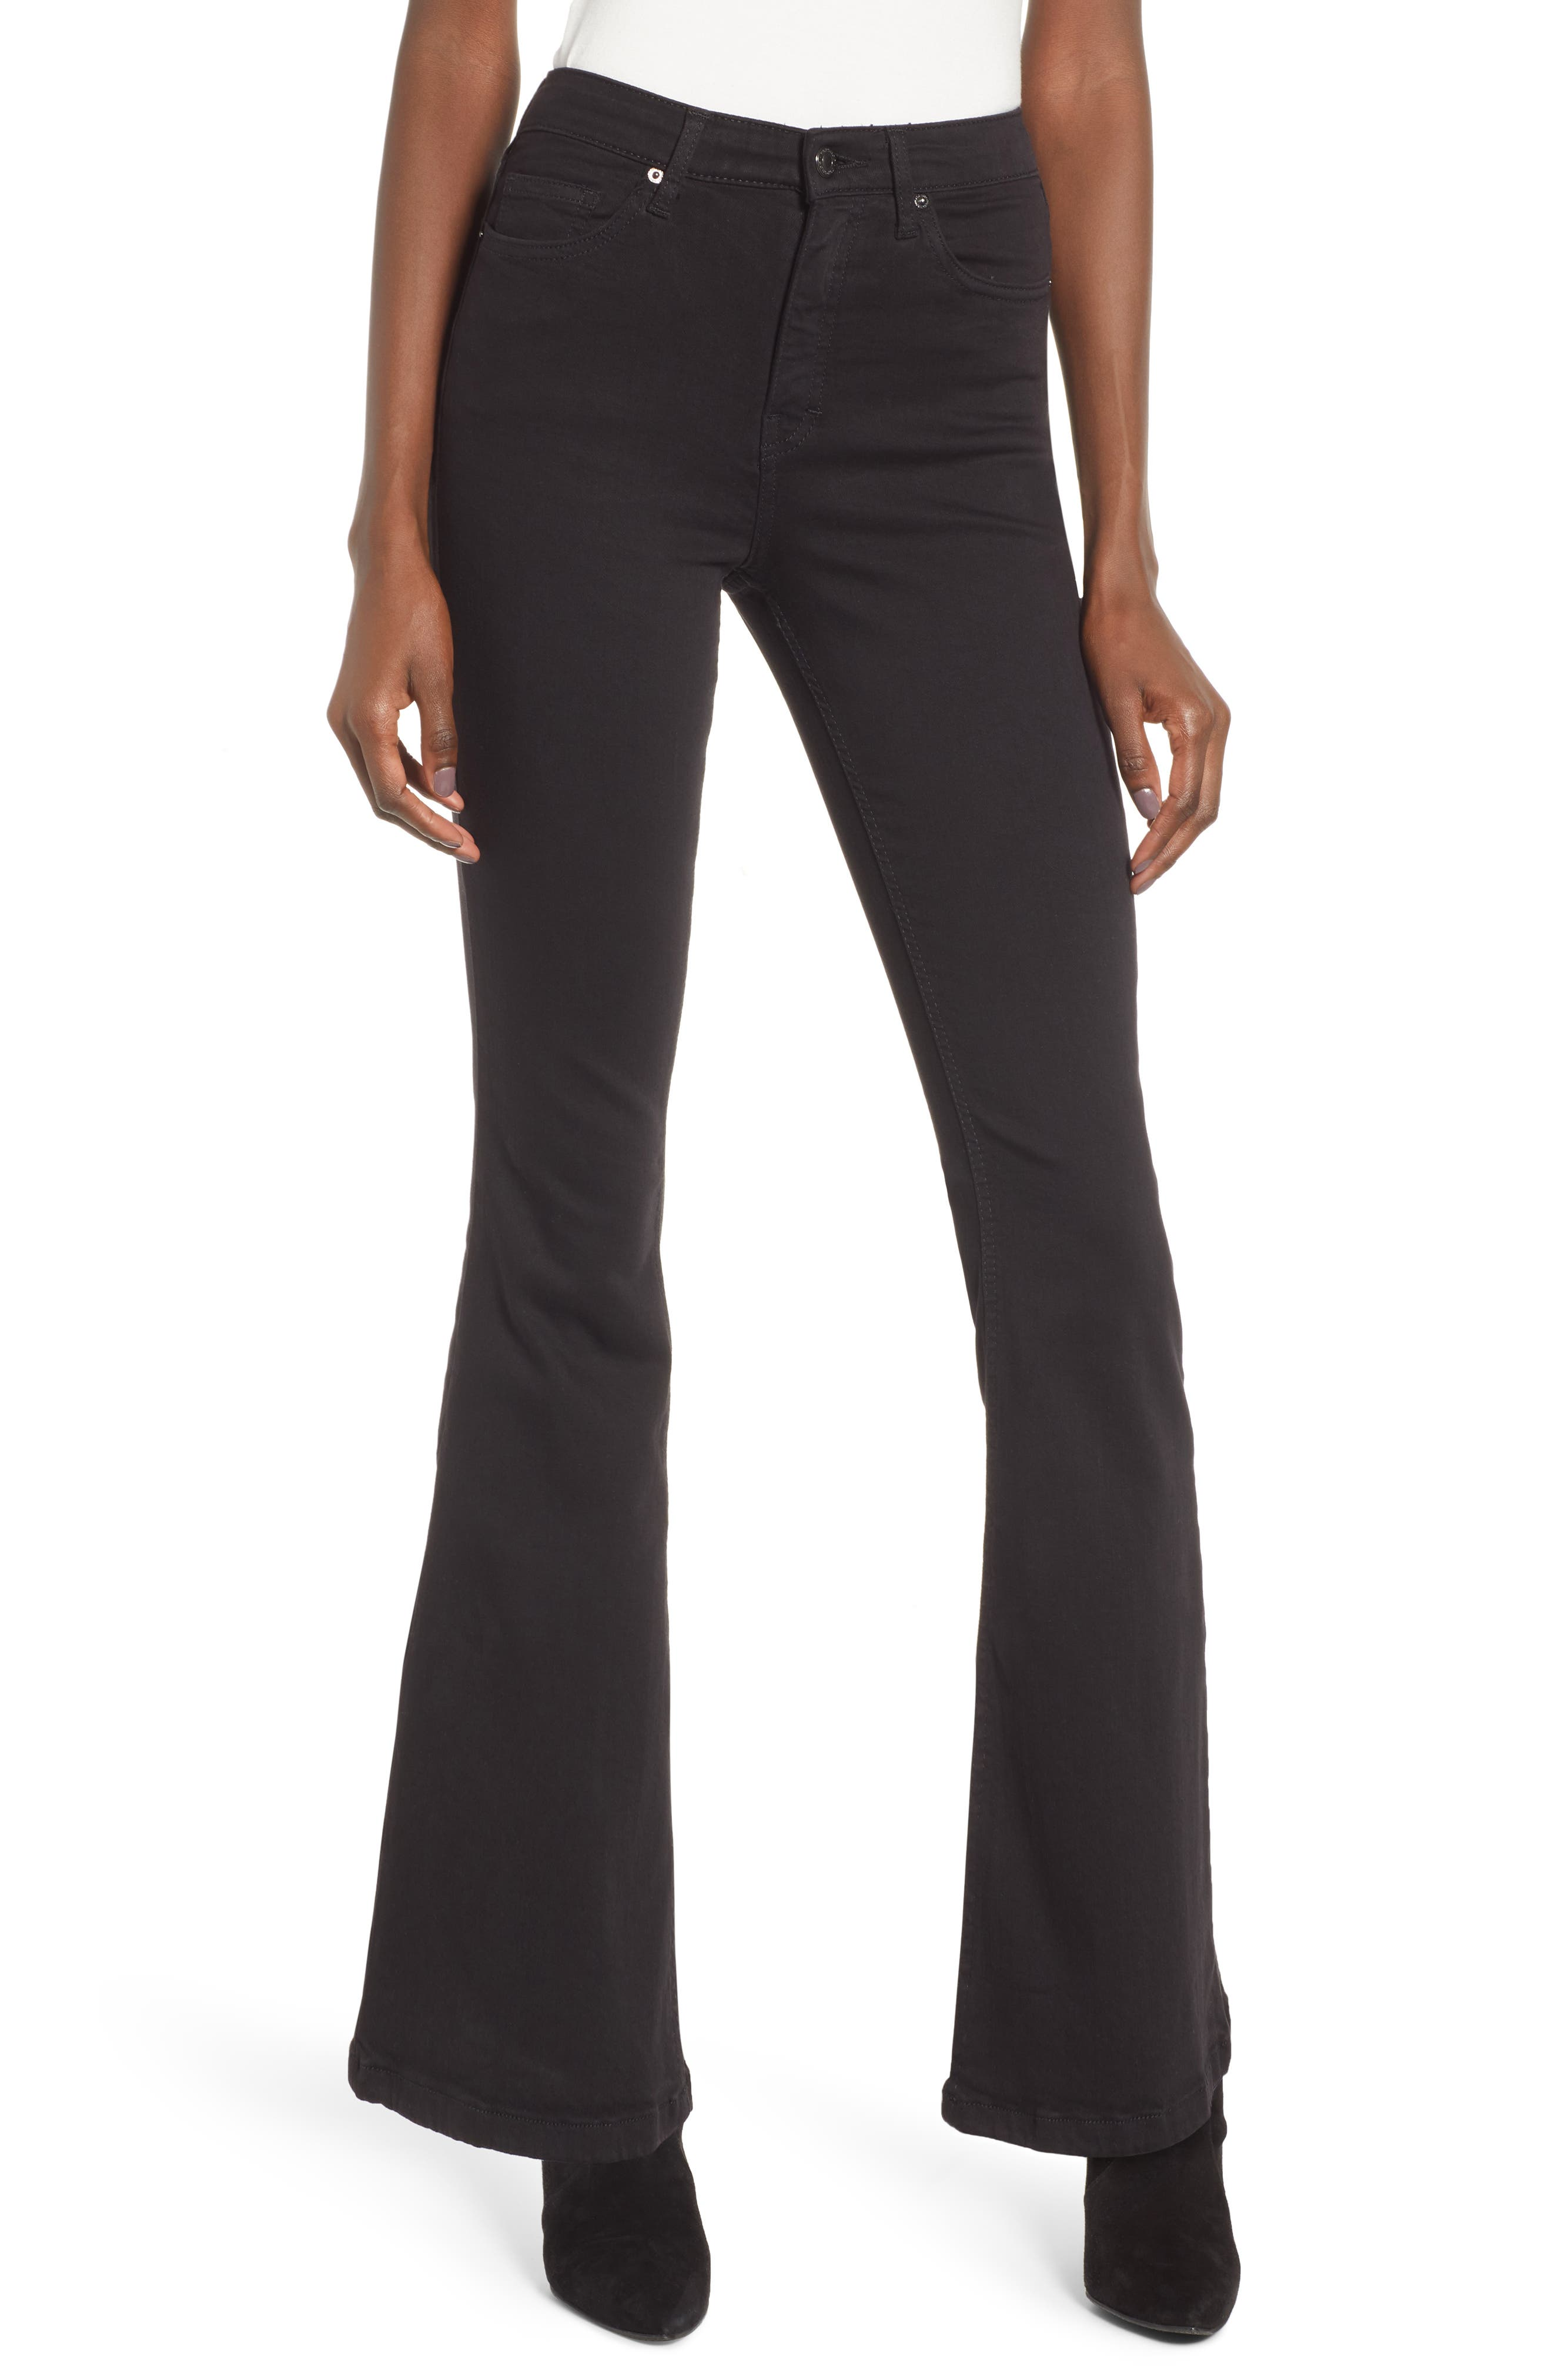 TOPSHOP, Jamie Flare Leg Jeans, Main thumbnail 1, color, OPEN BLACK